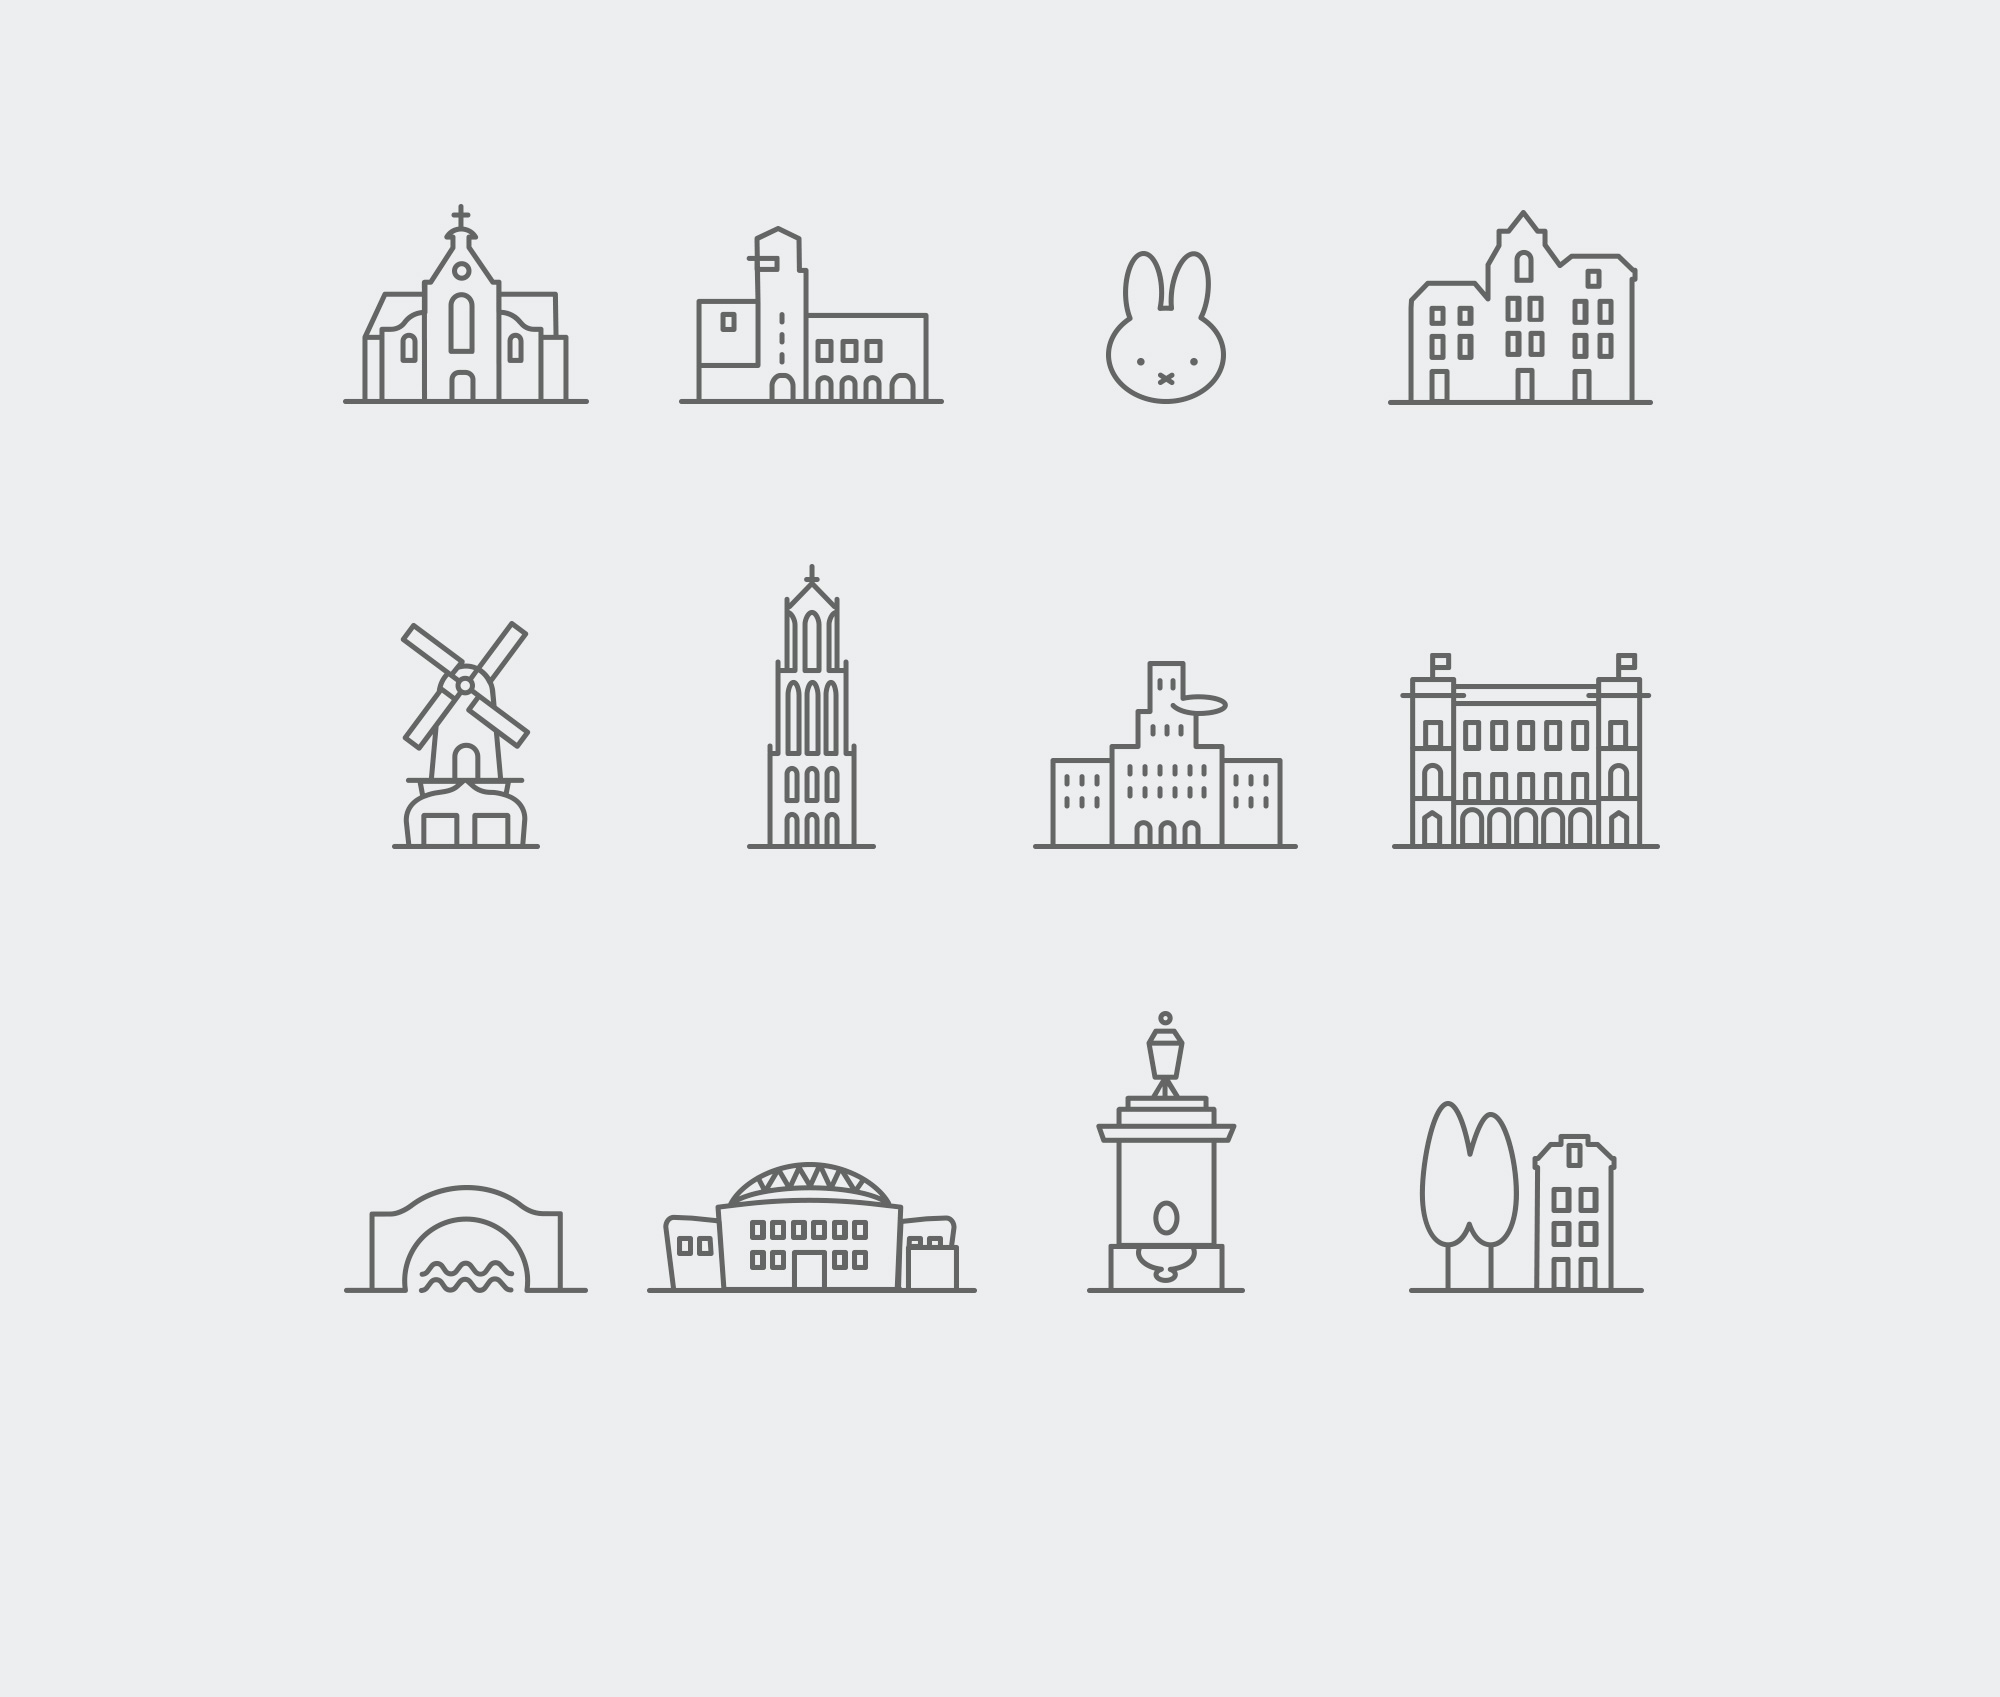 Meeting Rooms Icon Grid